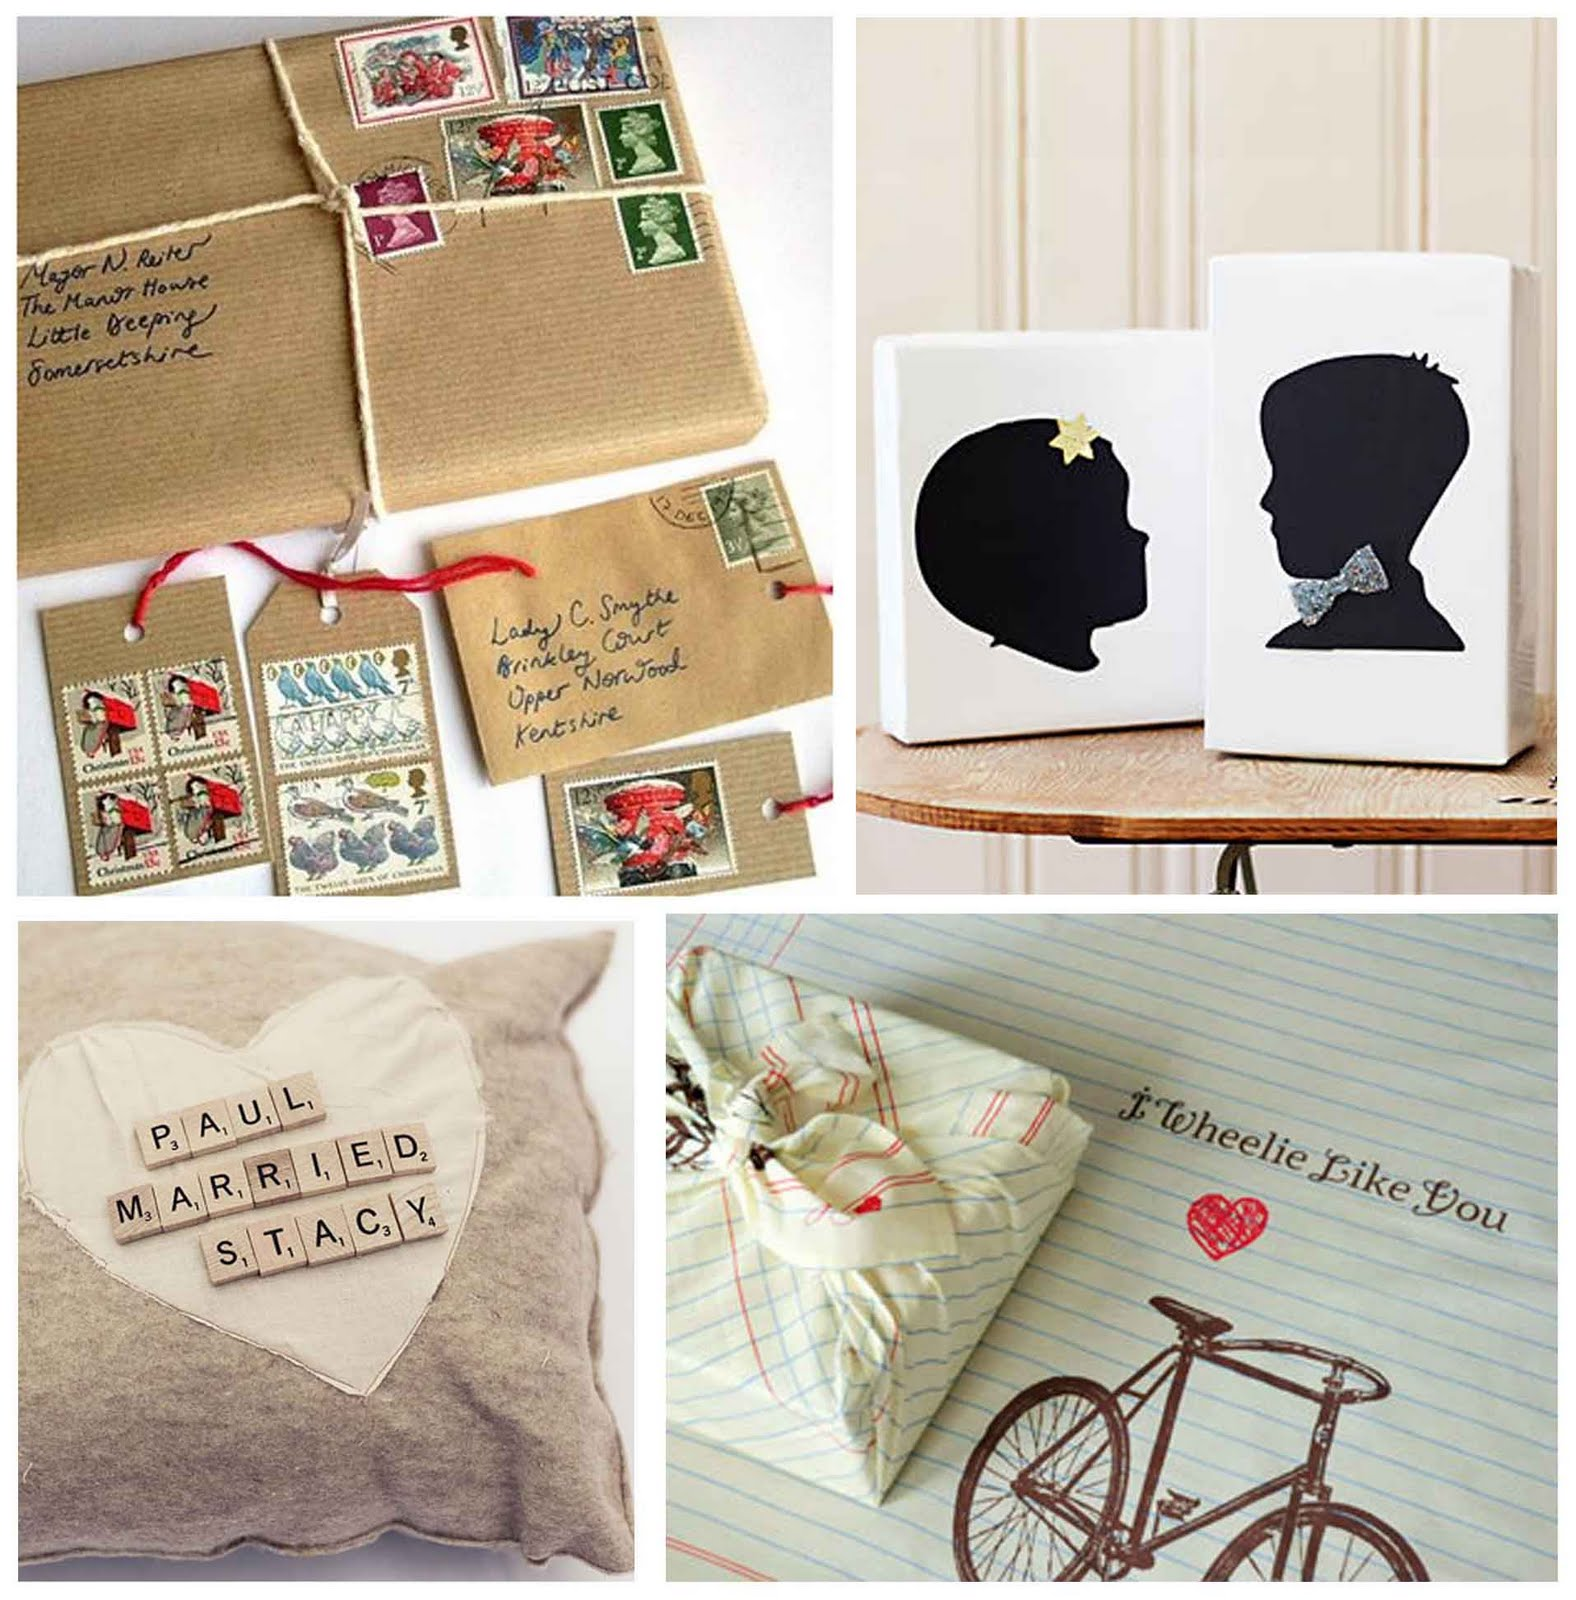 Wedding Gifts Ideas Unique : weddings gifts wedding gifts anniversary gifts weddings gifts